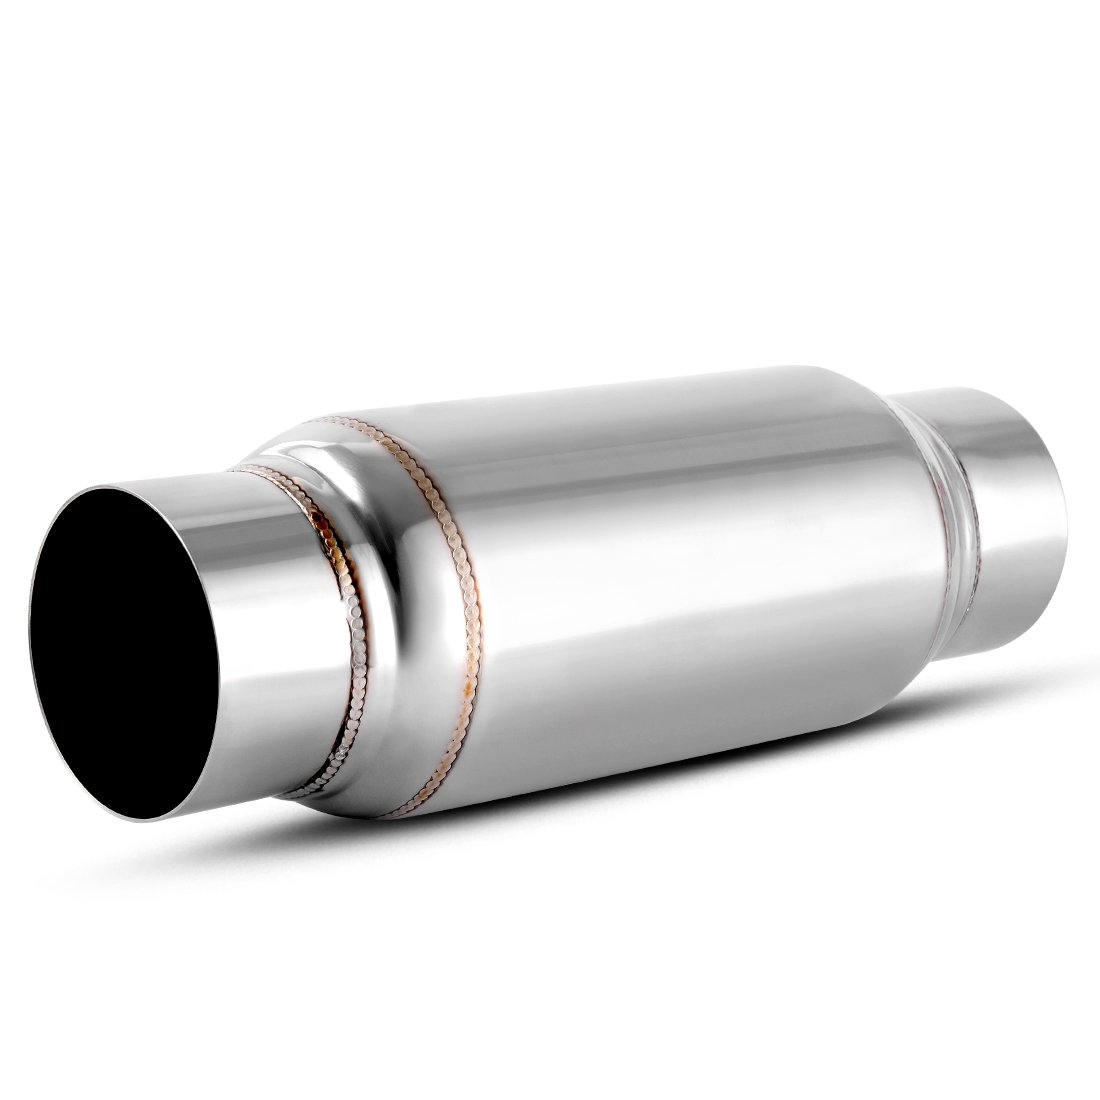 3 Inch Inside Inlet Muffler, AUTOSAVER88 Universal Stainless Steel Welded Exhaust Muffler Deep Sound for Cars, 14' Overall Length. 14 Overall Length.